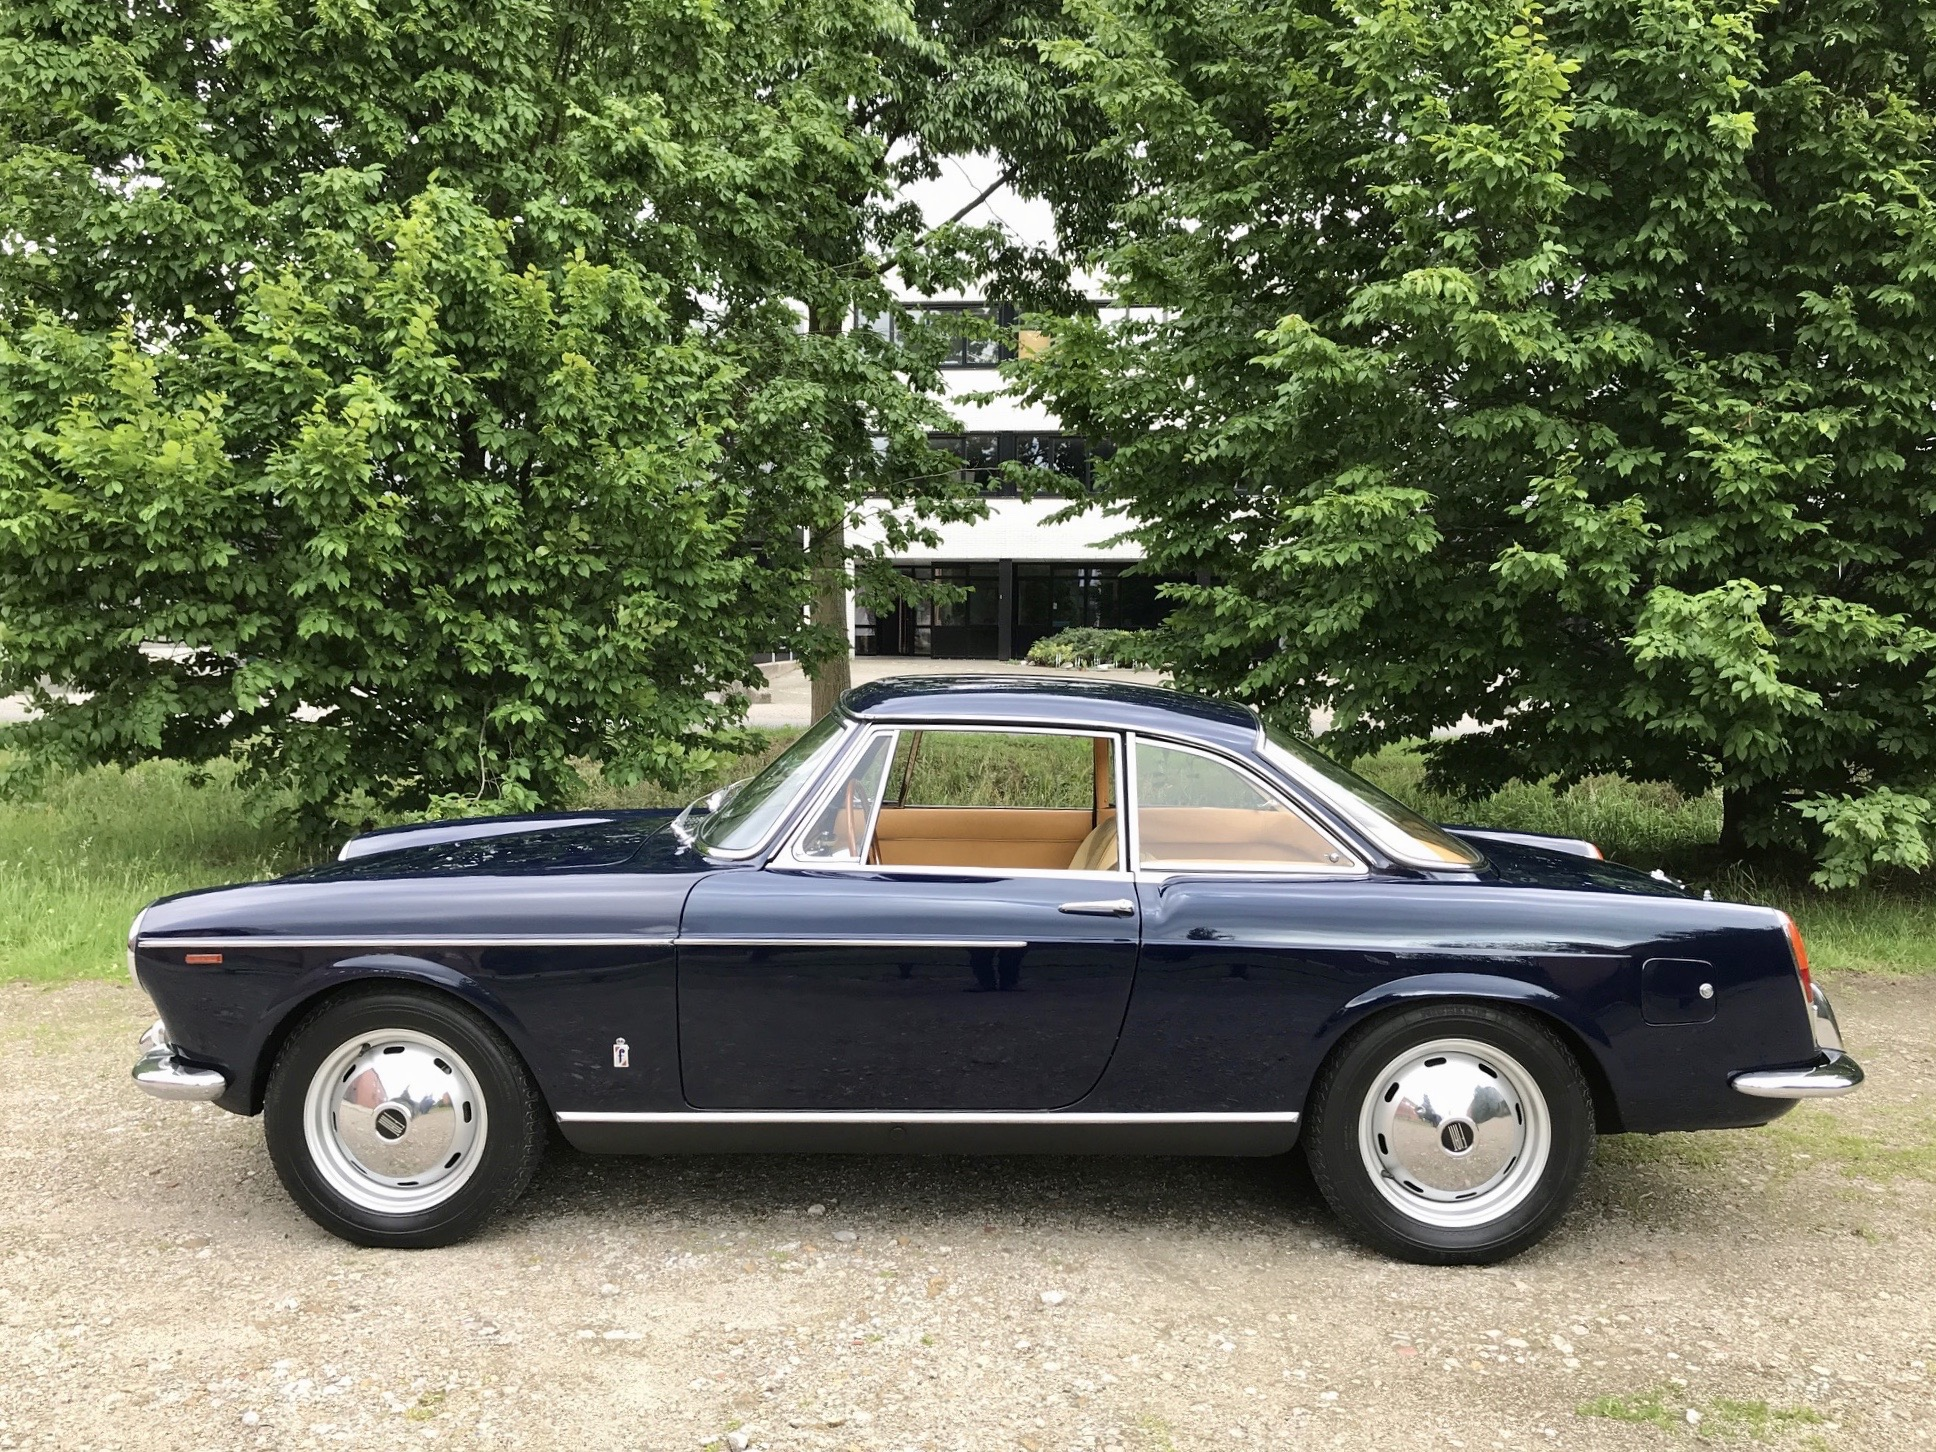 Fiat Osca 1600S Coupe for sale